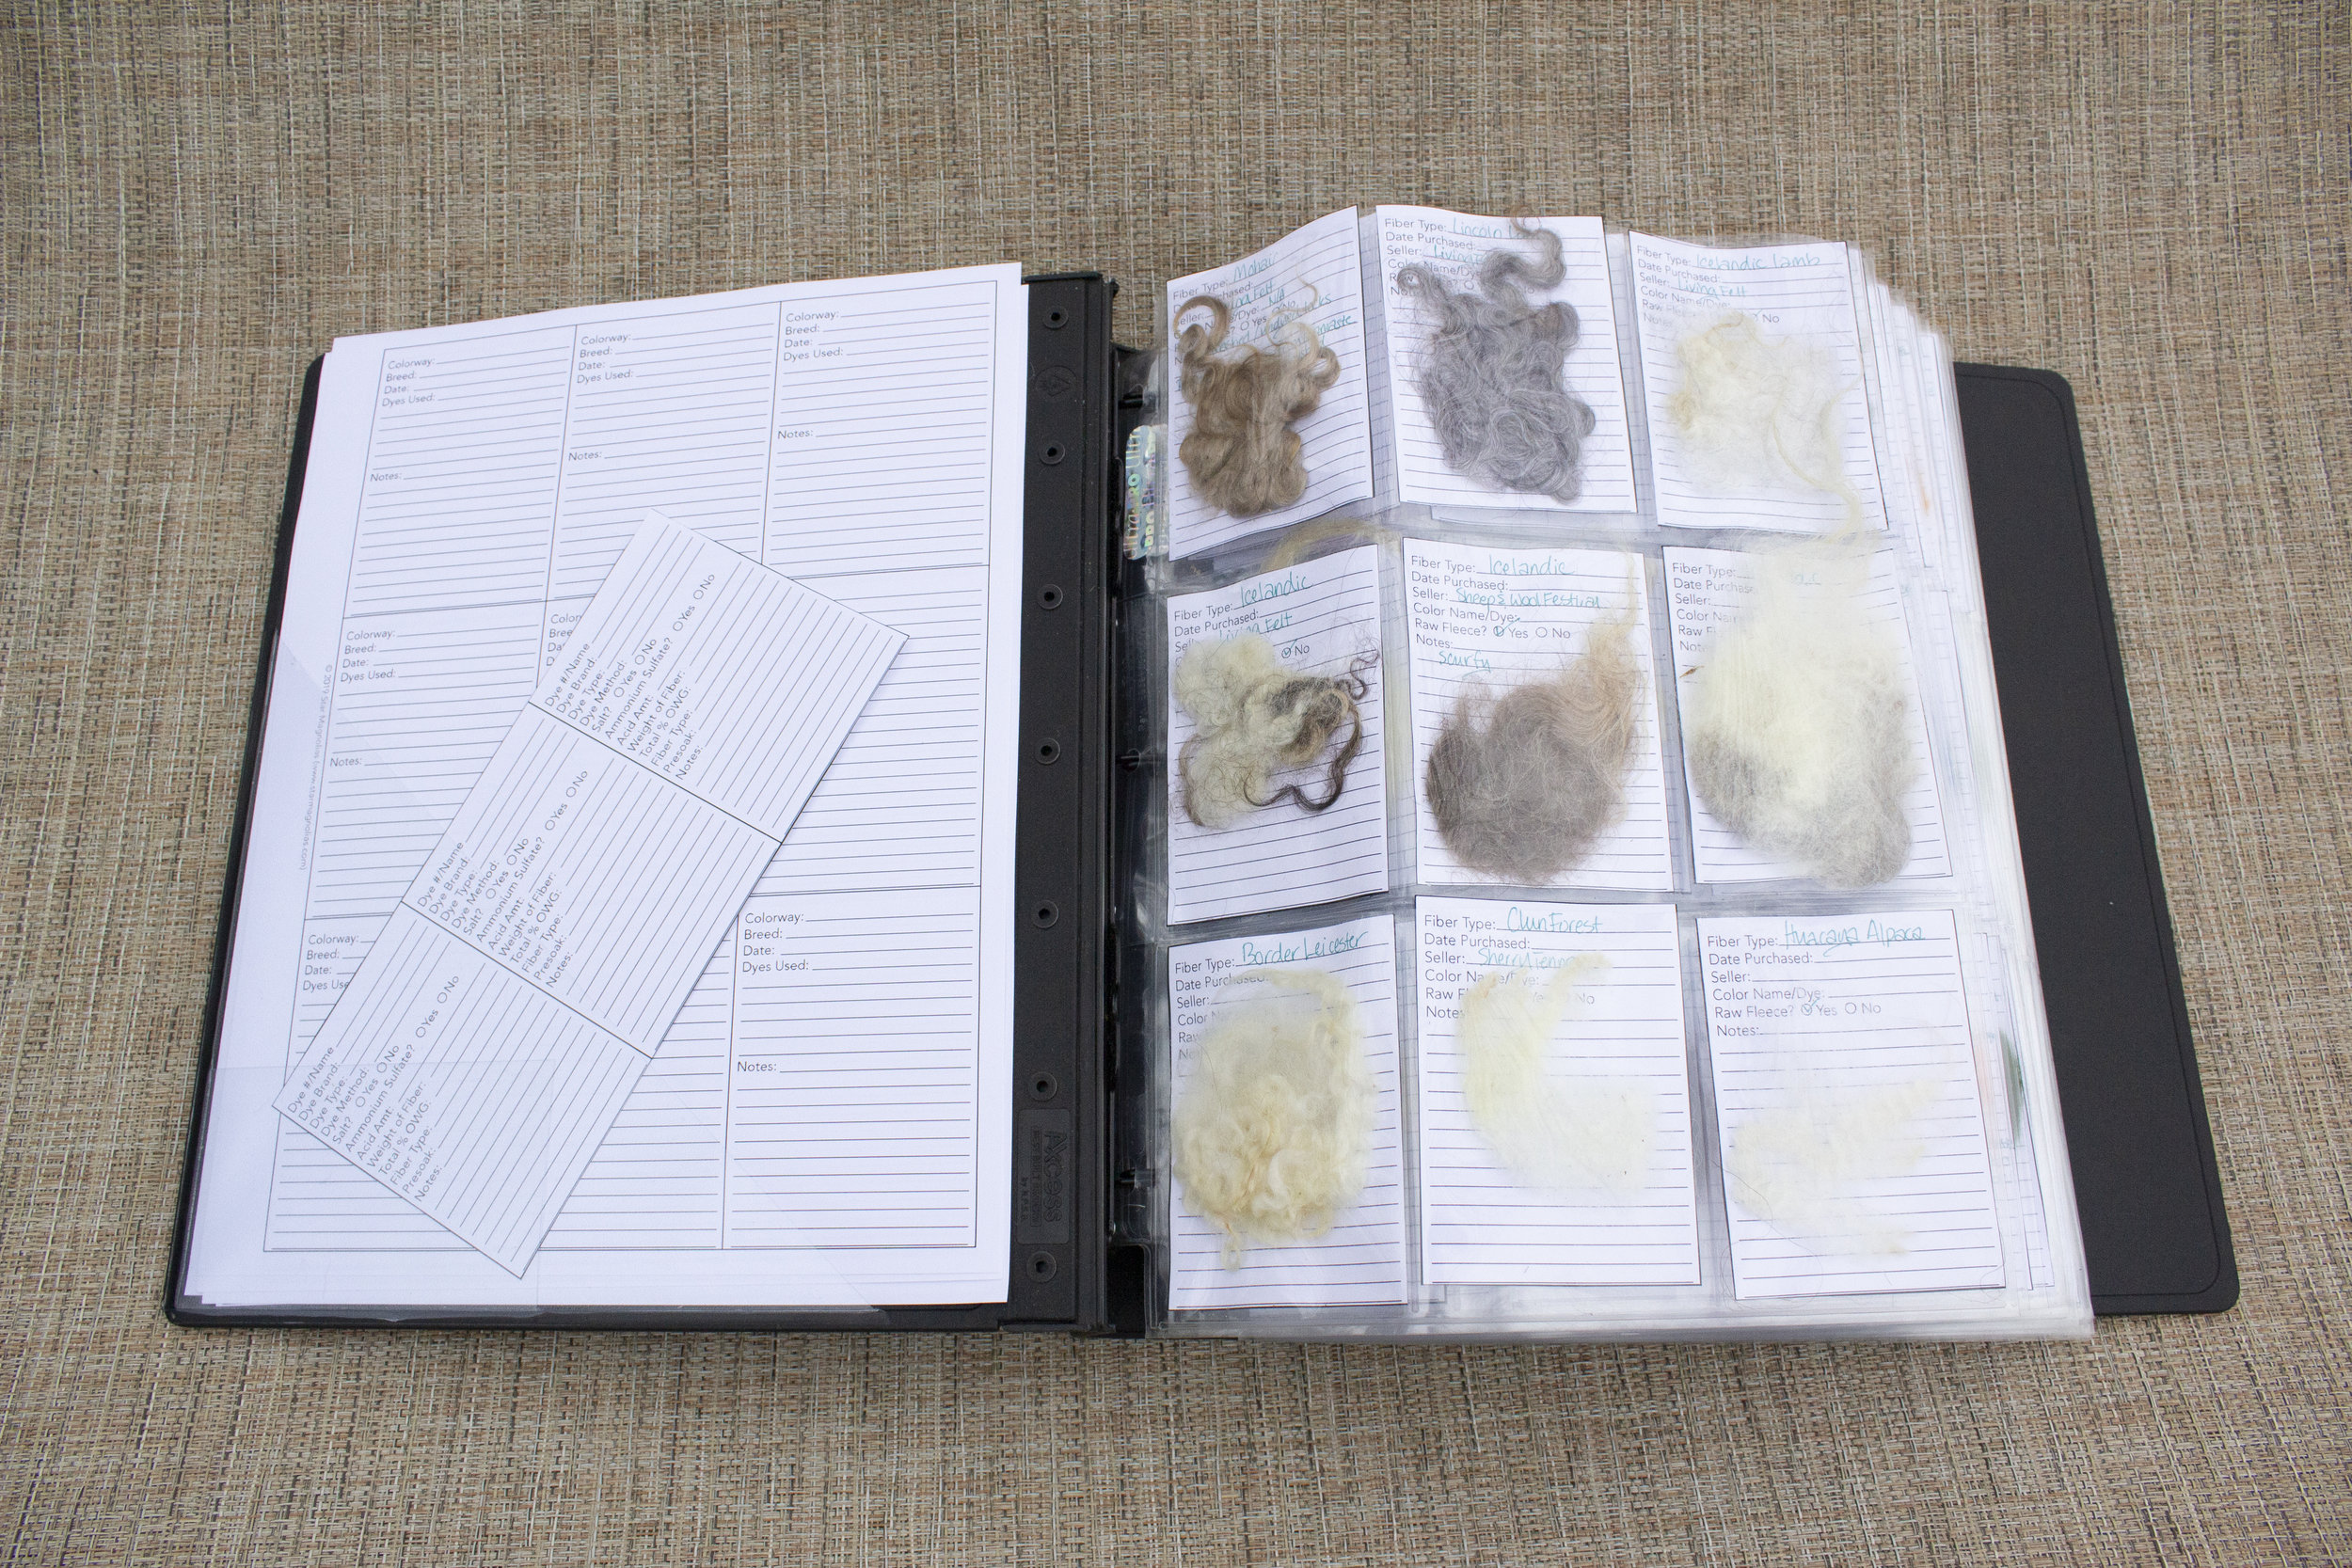 Image: open binder with playing card organizer sheets showing various undyed locks stuffed in the pockets in front of forms explaining what each lock is